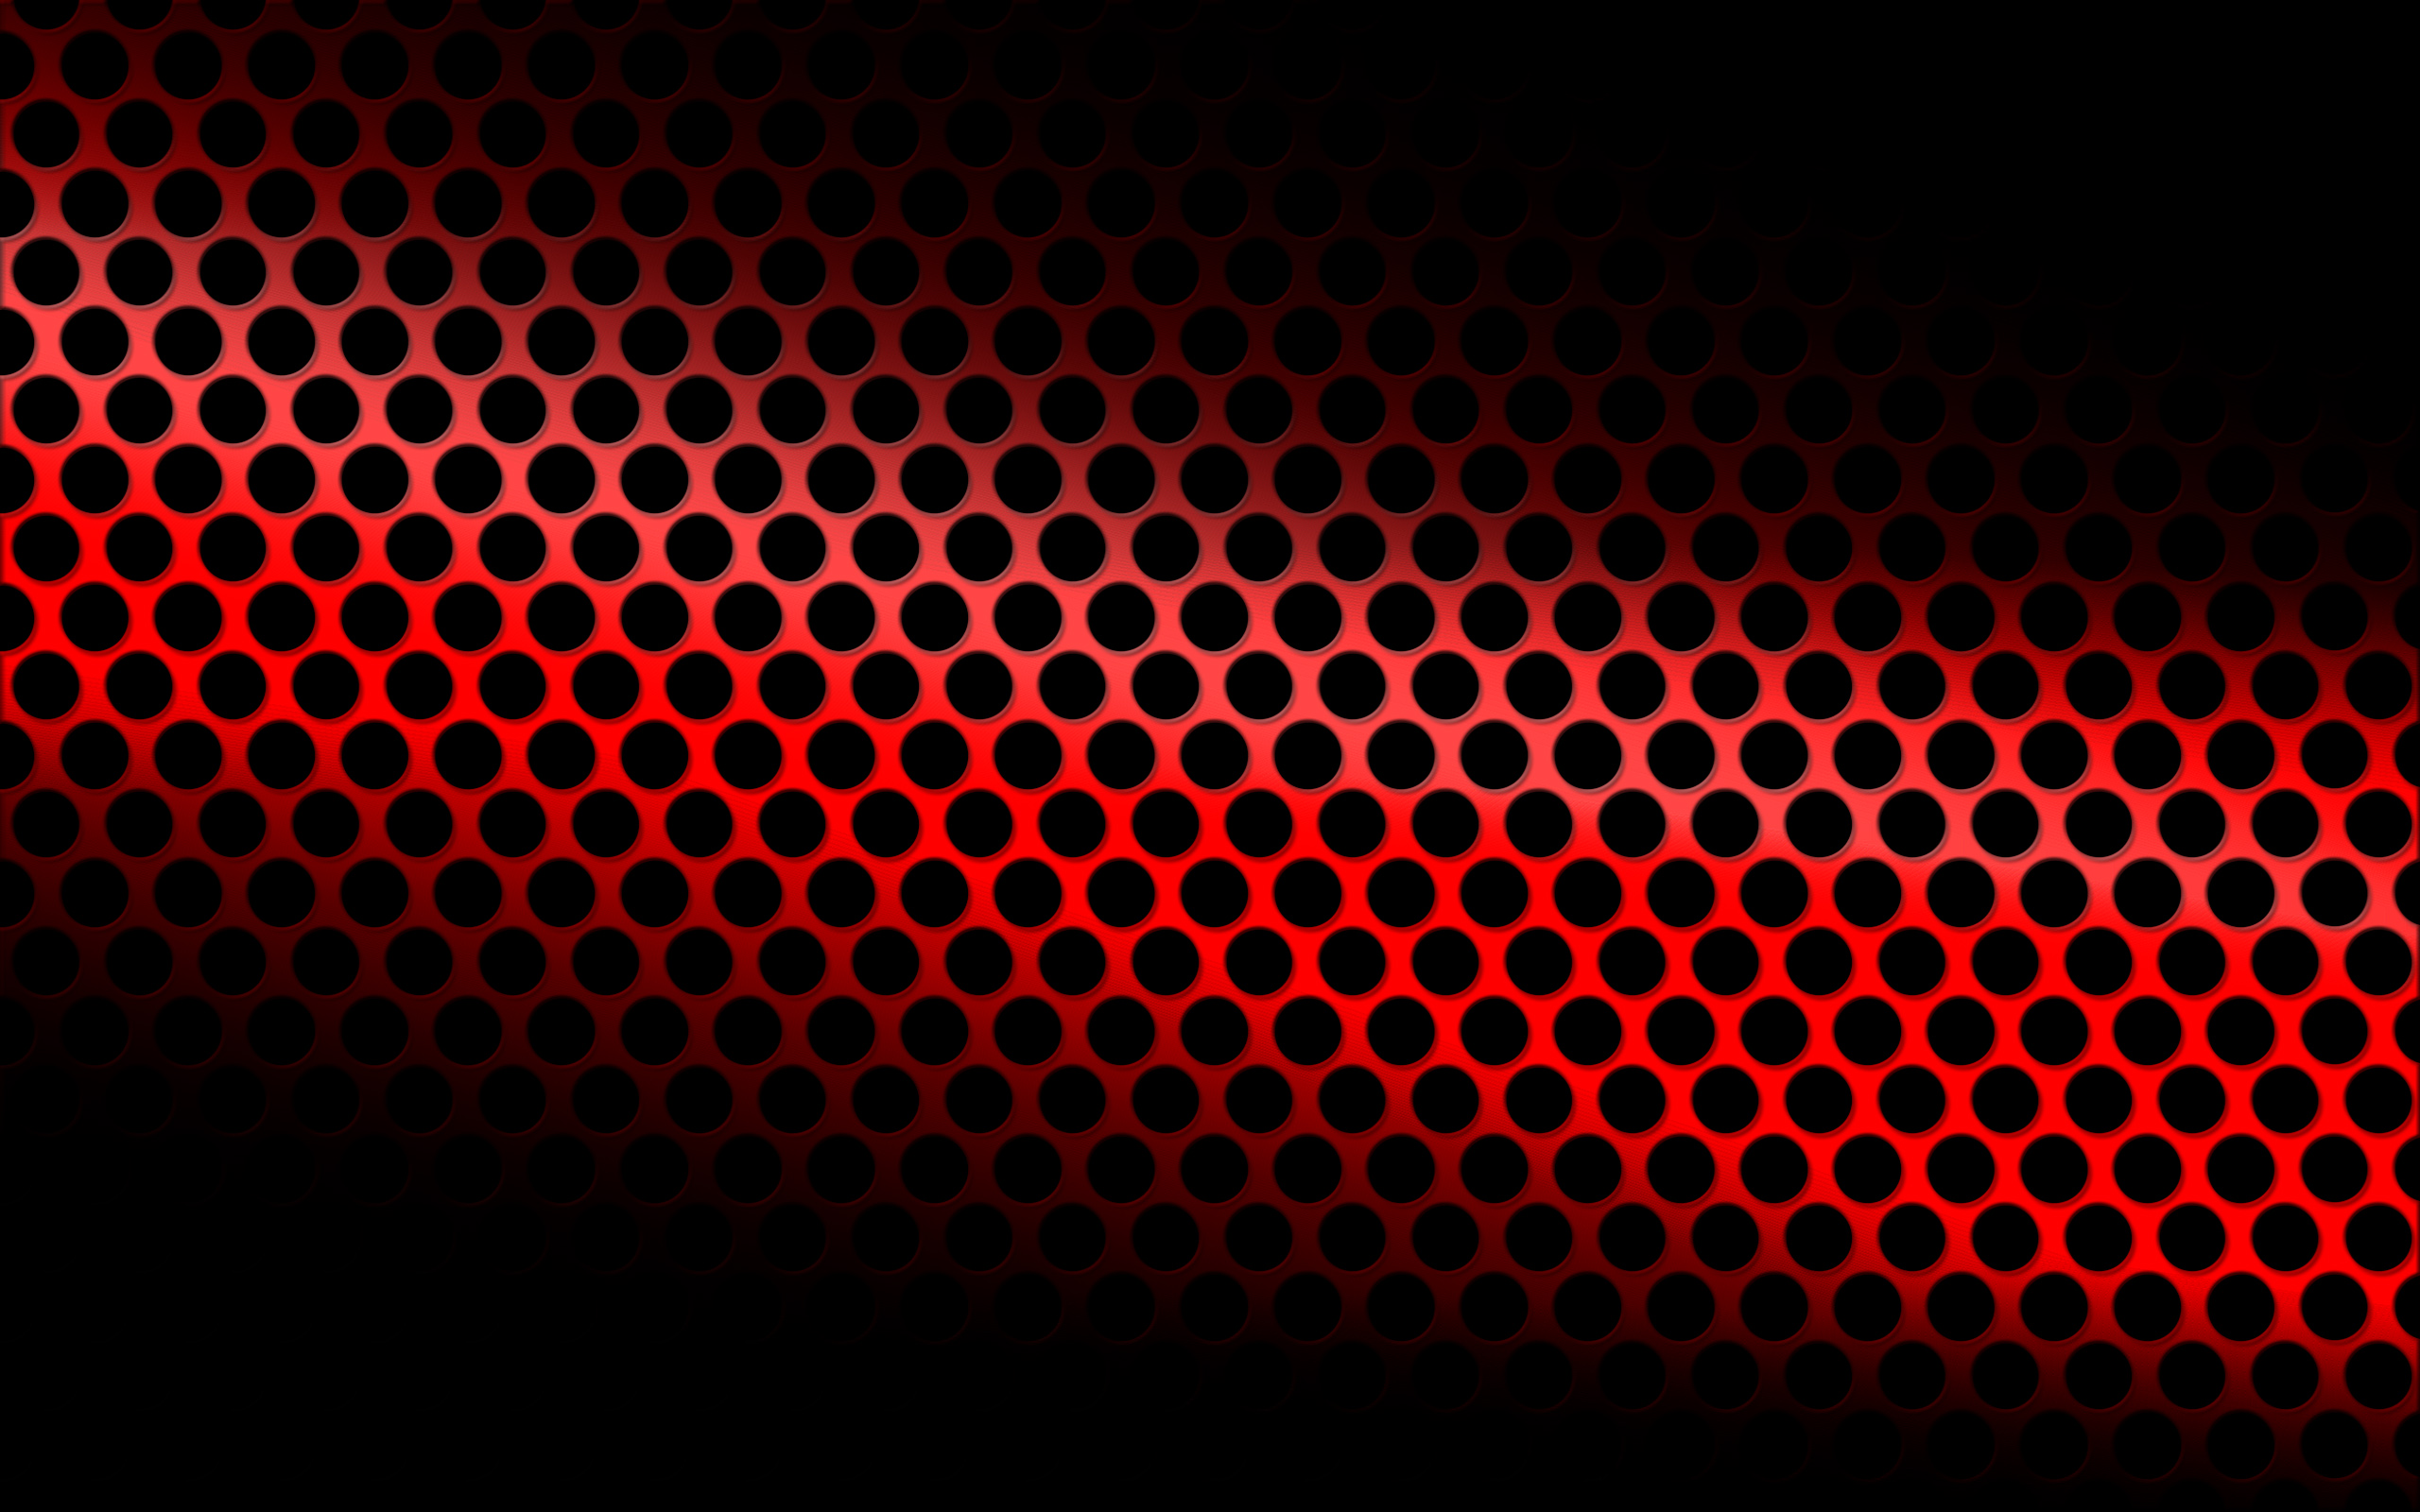 Red and Black Wallpapers red and black wallpapers Widescreen 2560x1600